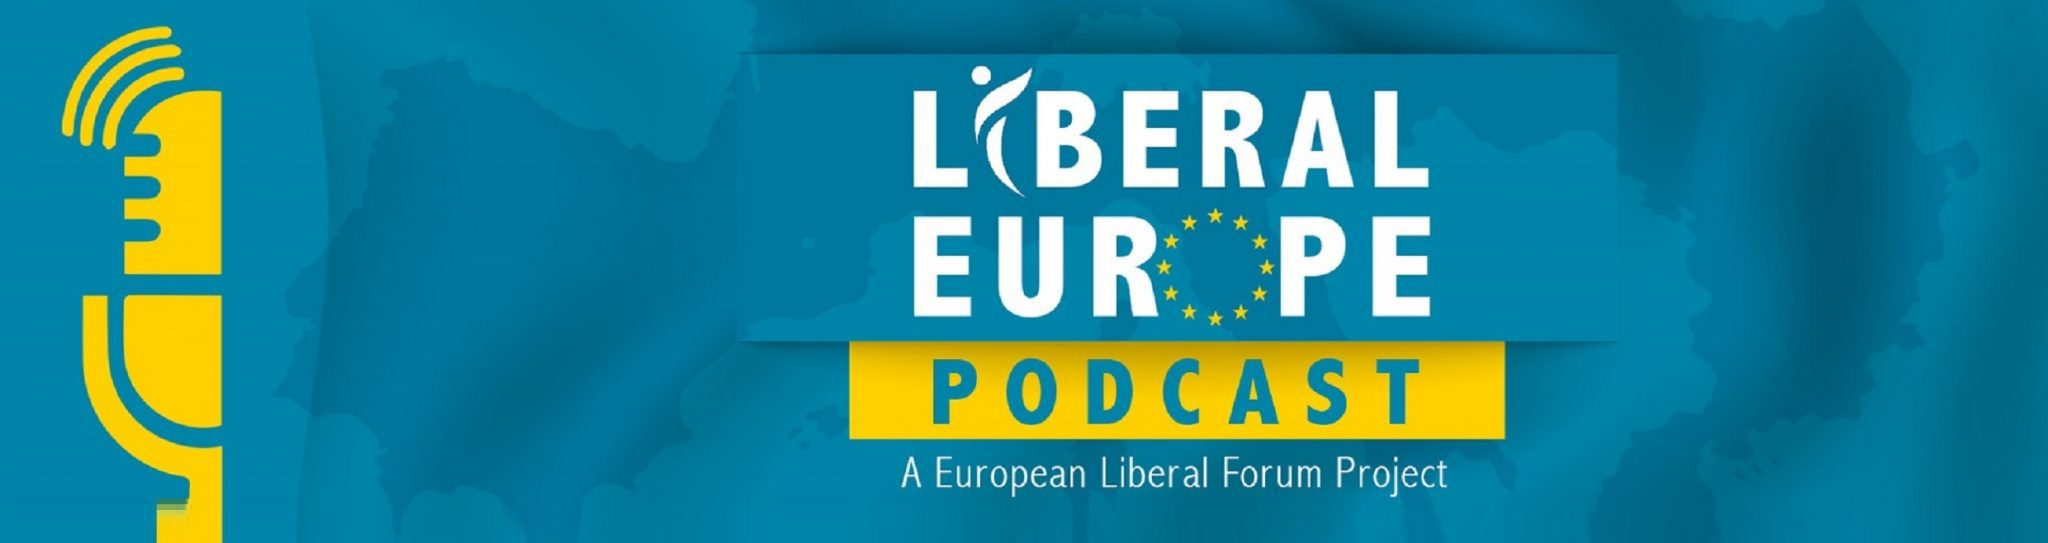 Liberal Europe Podcast – Episode 24 – Mathias Sundin